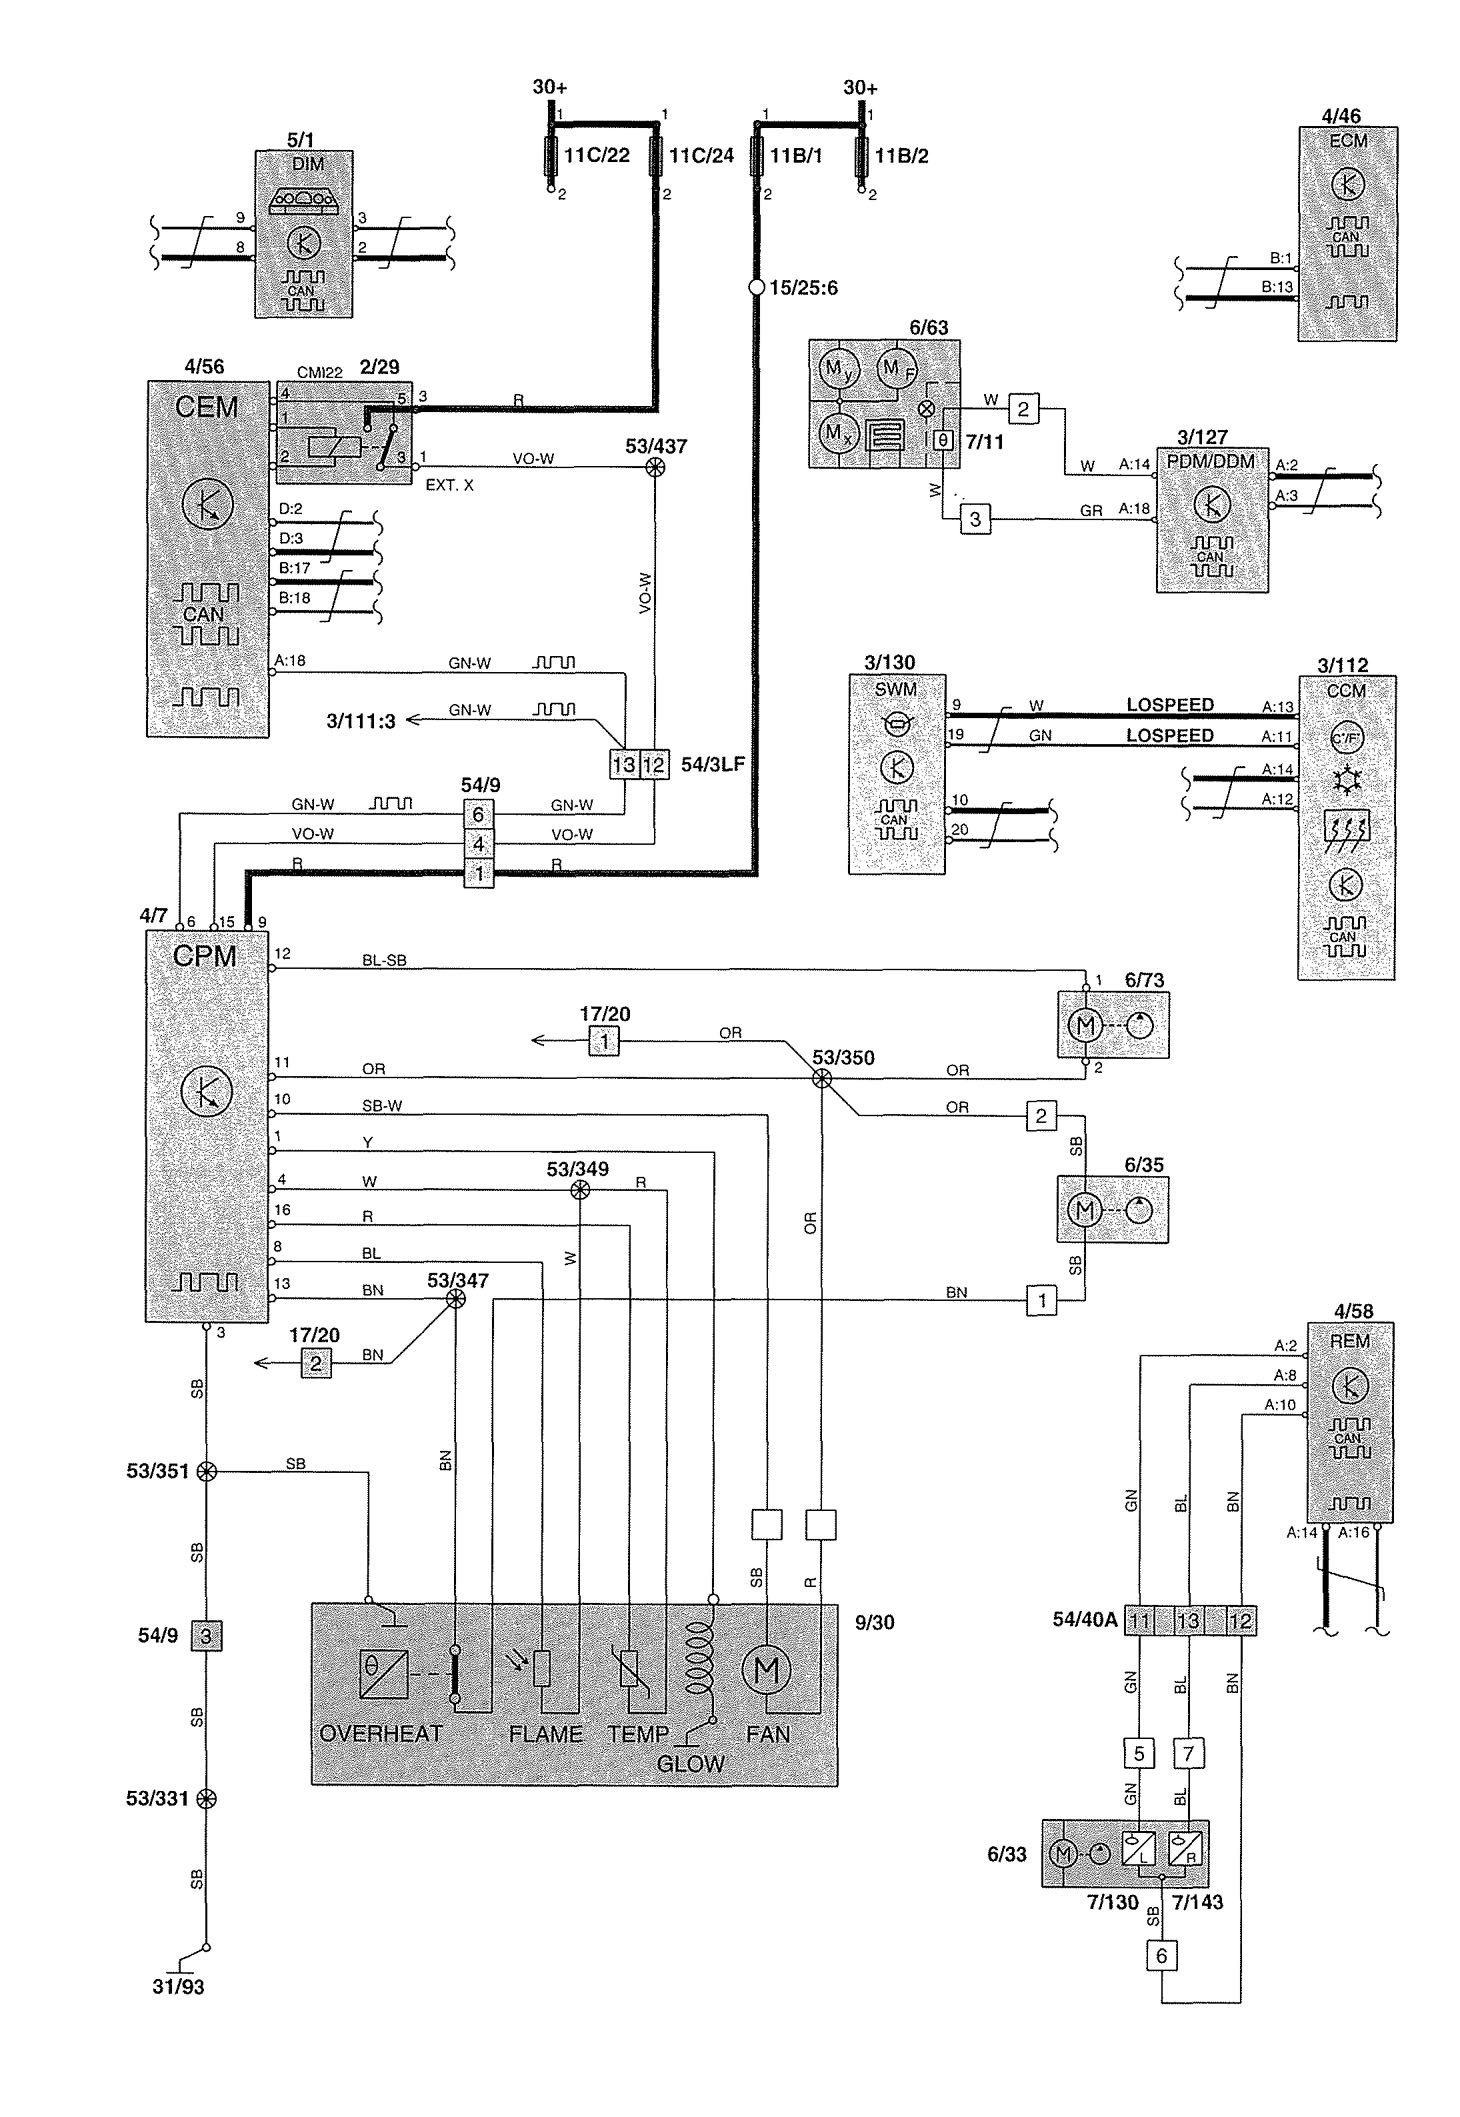 Ferrari 308 Wiring Diagram - Schematics Online on ferrari 246 wiring diagram, ferrari 330 wiring diagram, ferrari 308 frame, ferrari 308 fuel pump, ferrari 308 radiator, ferrari 308 tires, ferrari 308 firing order, ferrari 355 wiring diagram, ferrari 308 oil filter, ferrari 308 wheels, ferrari 308 parts, ferrari 308 transformer, ferrari mondial wiring diagram, ferrari 308 gtsi, ferrari 456 wiring diagram, ferrari 308 exhaust, ferrari 308 seats, ferrari 308 speedometer, ferrari 308 engine, ferrari 308 timing marks,